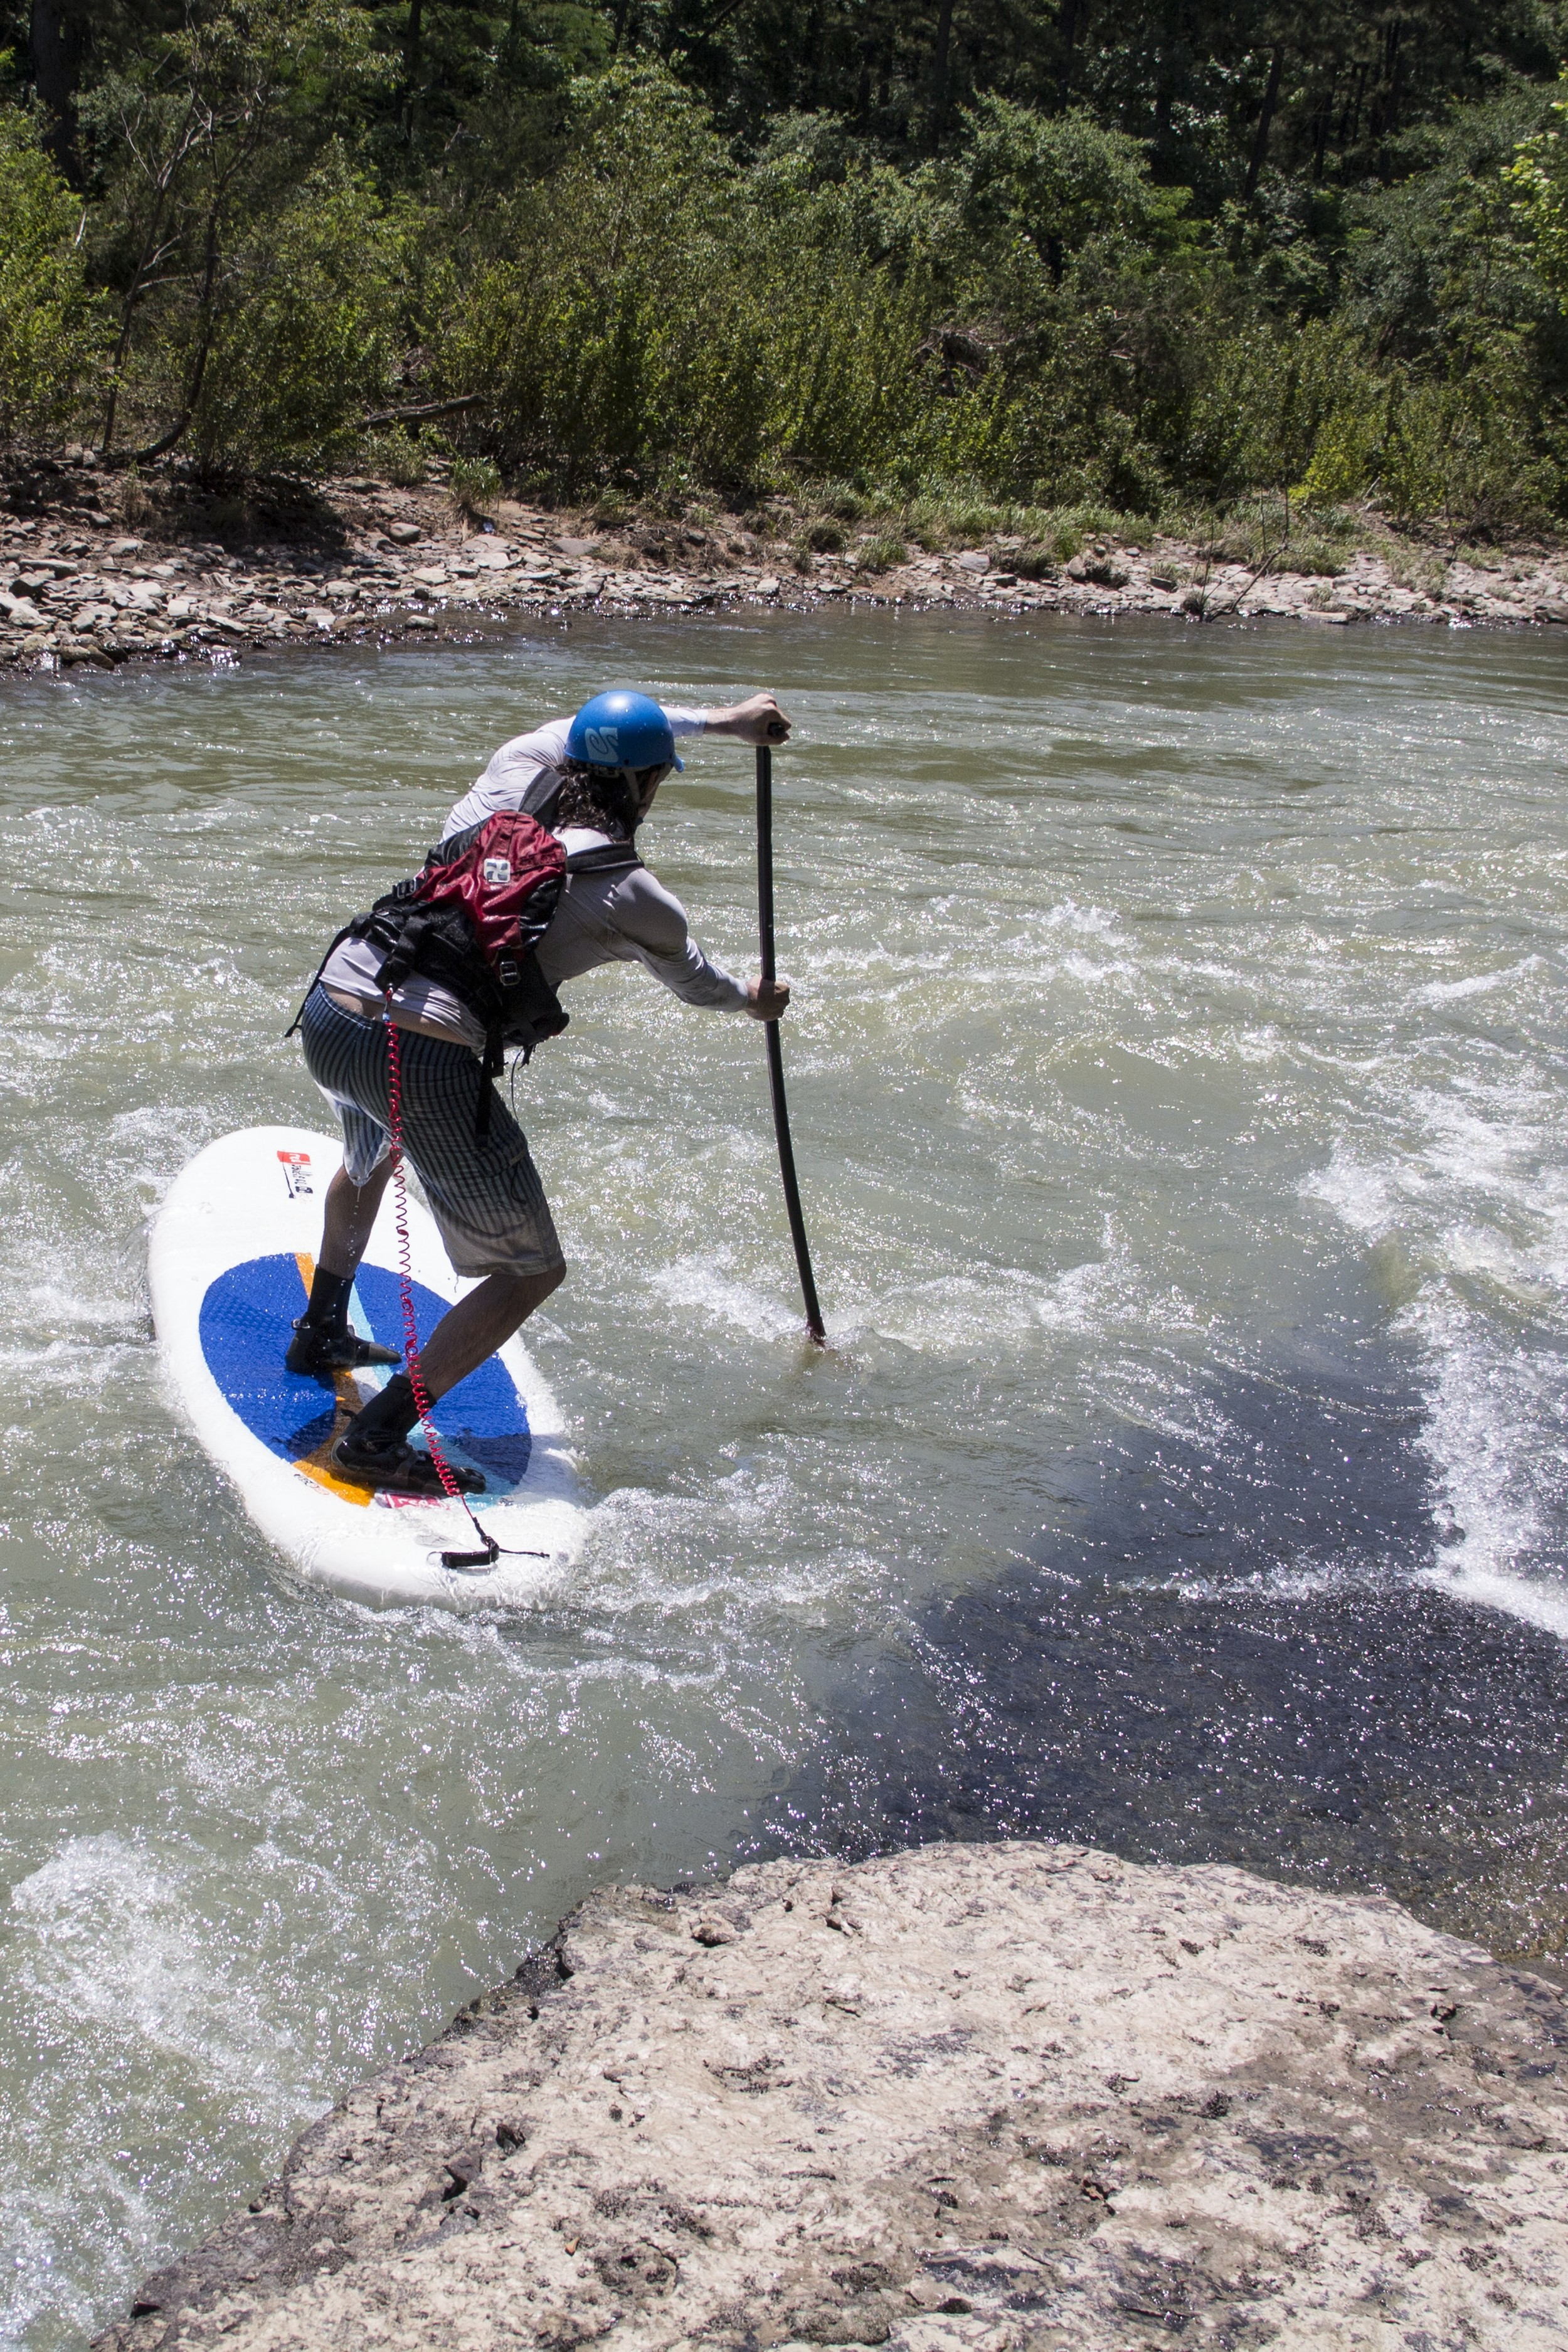 Standing above the rush of water on a SUP is a unique perspective.